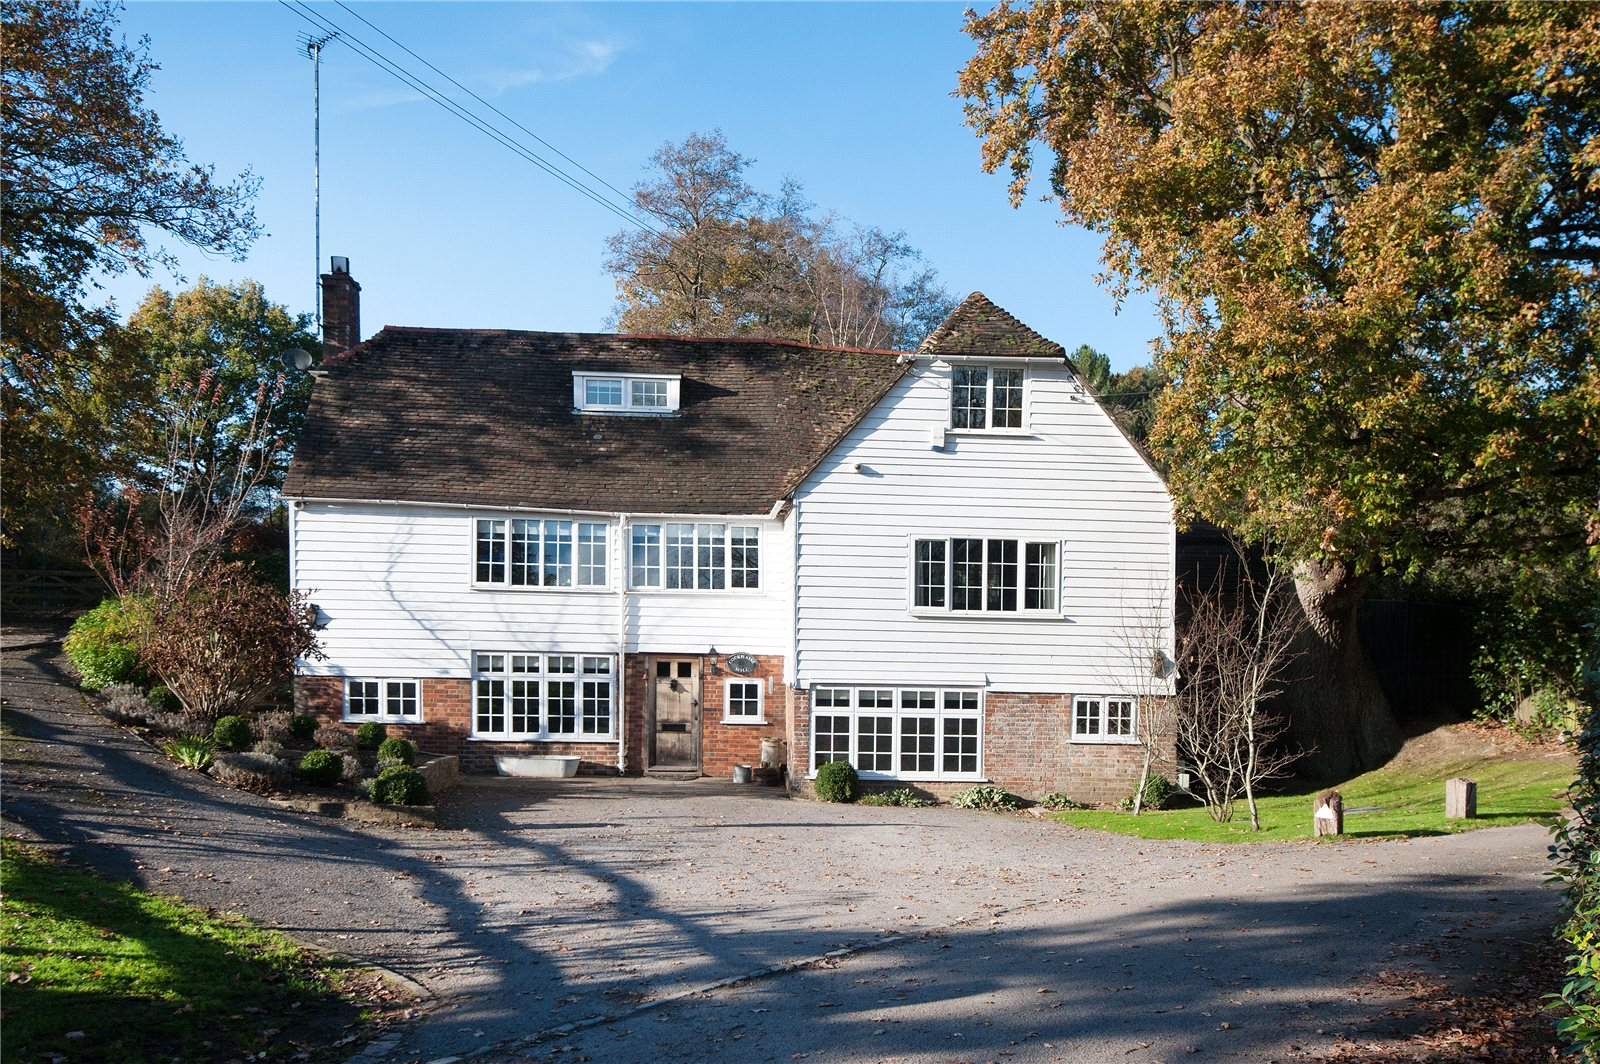 단독 가정 주택 용 매매 에 Monteswood Lane, Lindfield, West Sussex, RH16 Lindfield, 영국